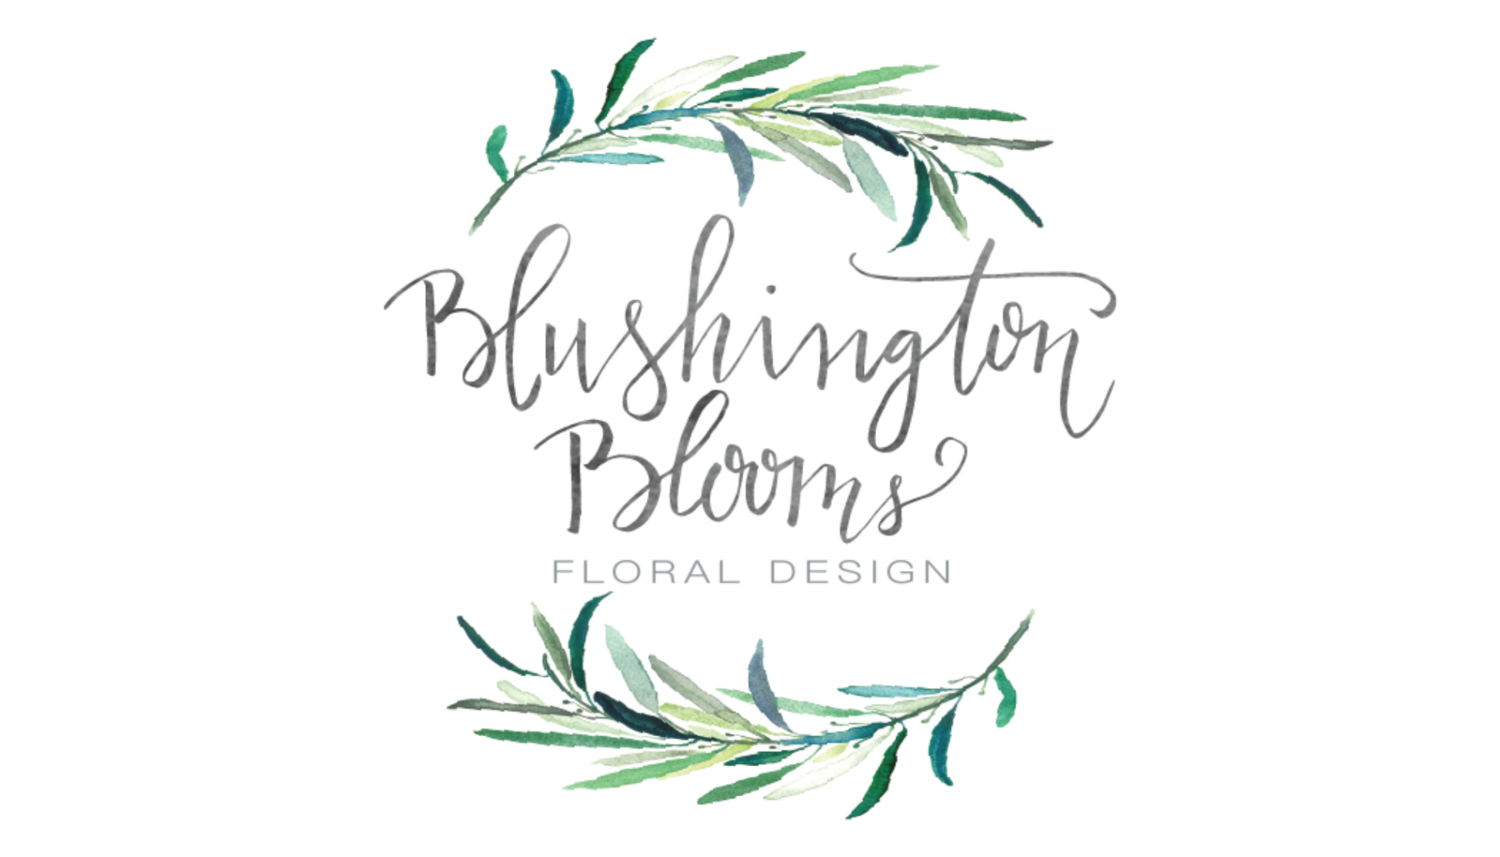 Dallas Fort Worth Wedding Florist | Luxury Wedding Design | Blushington Blooms | Wedding Planner